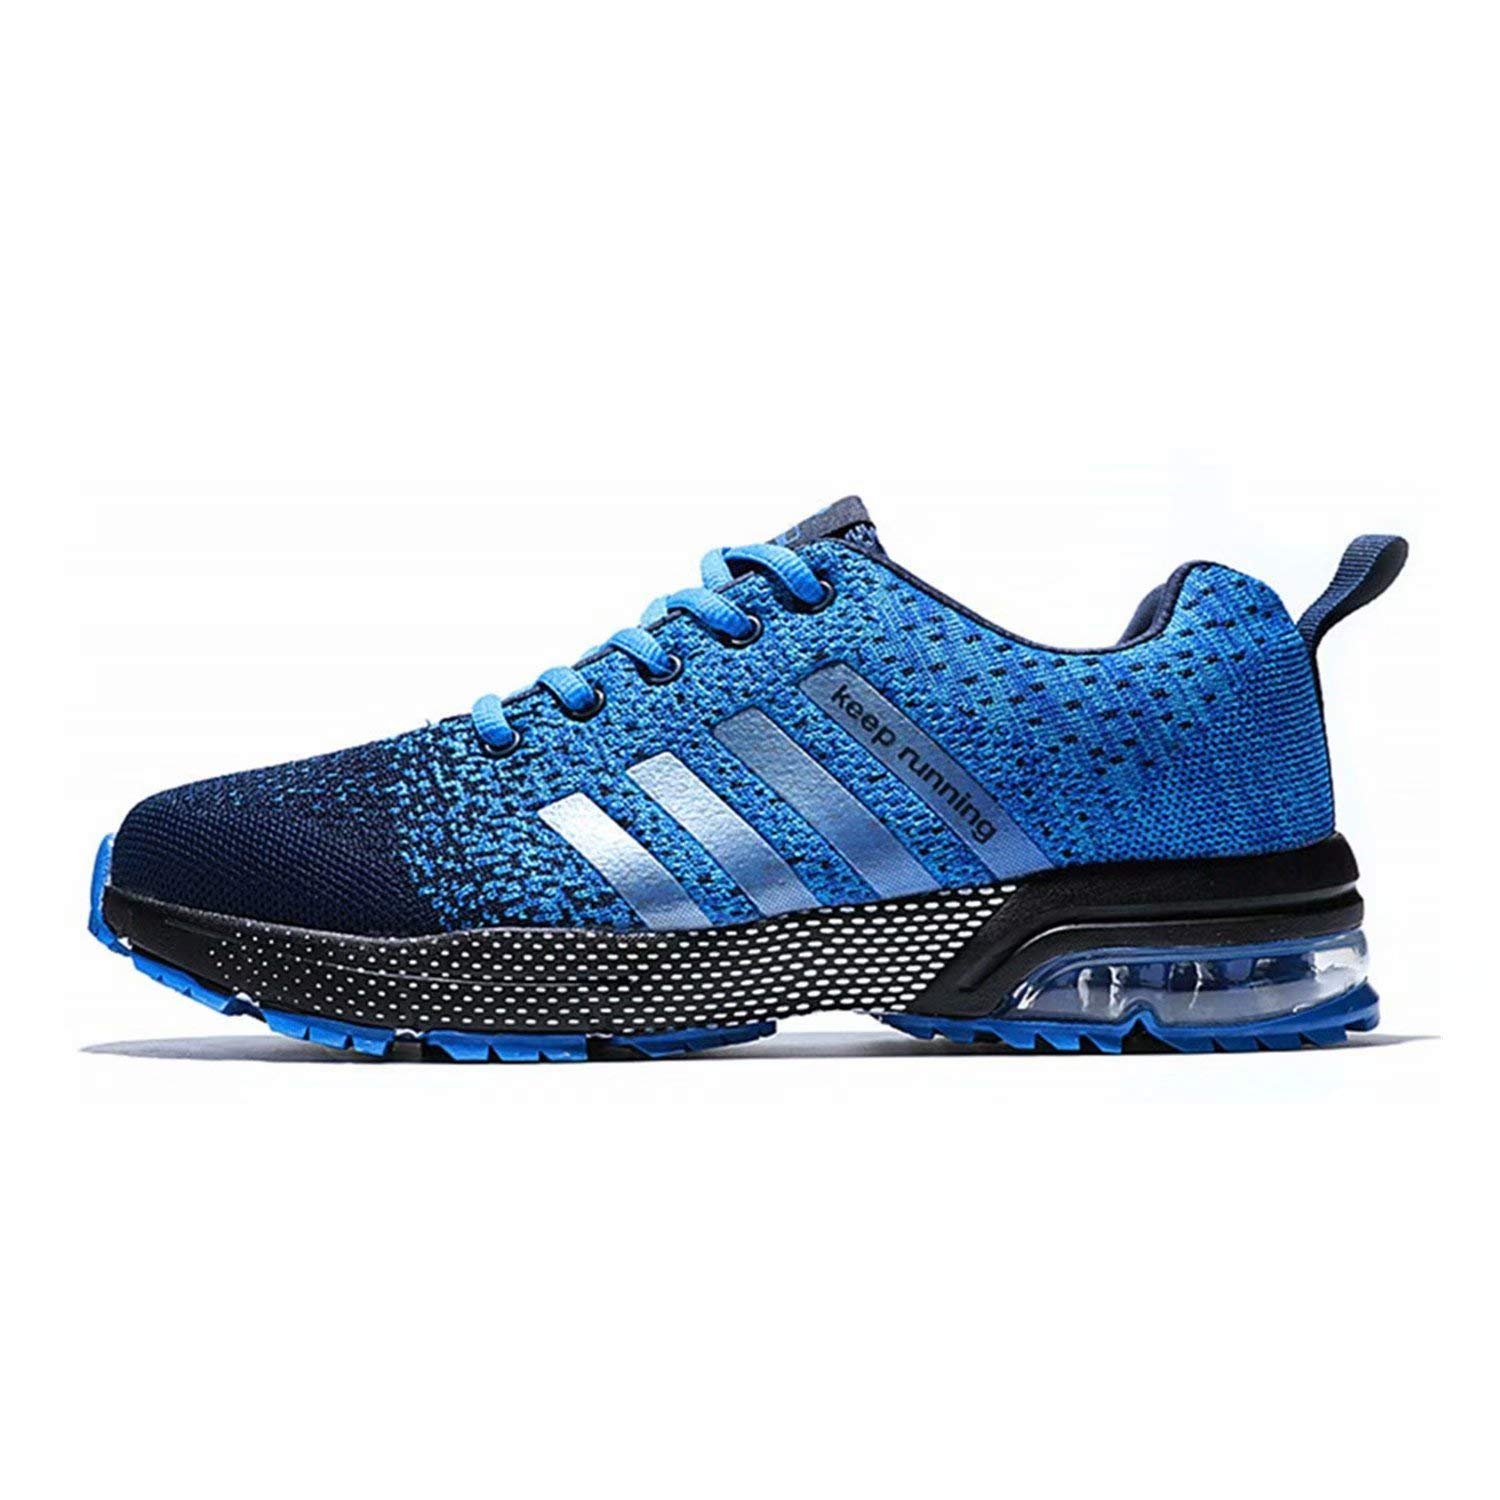 Men's & Women's Casual Air Breathable Cushion Shoes Breathable Air Lightweight Running Fashion Breathable Outdoor Sneakers(New) UK 7.5=Men 42 EU|Blue 49276c